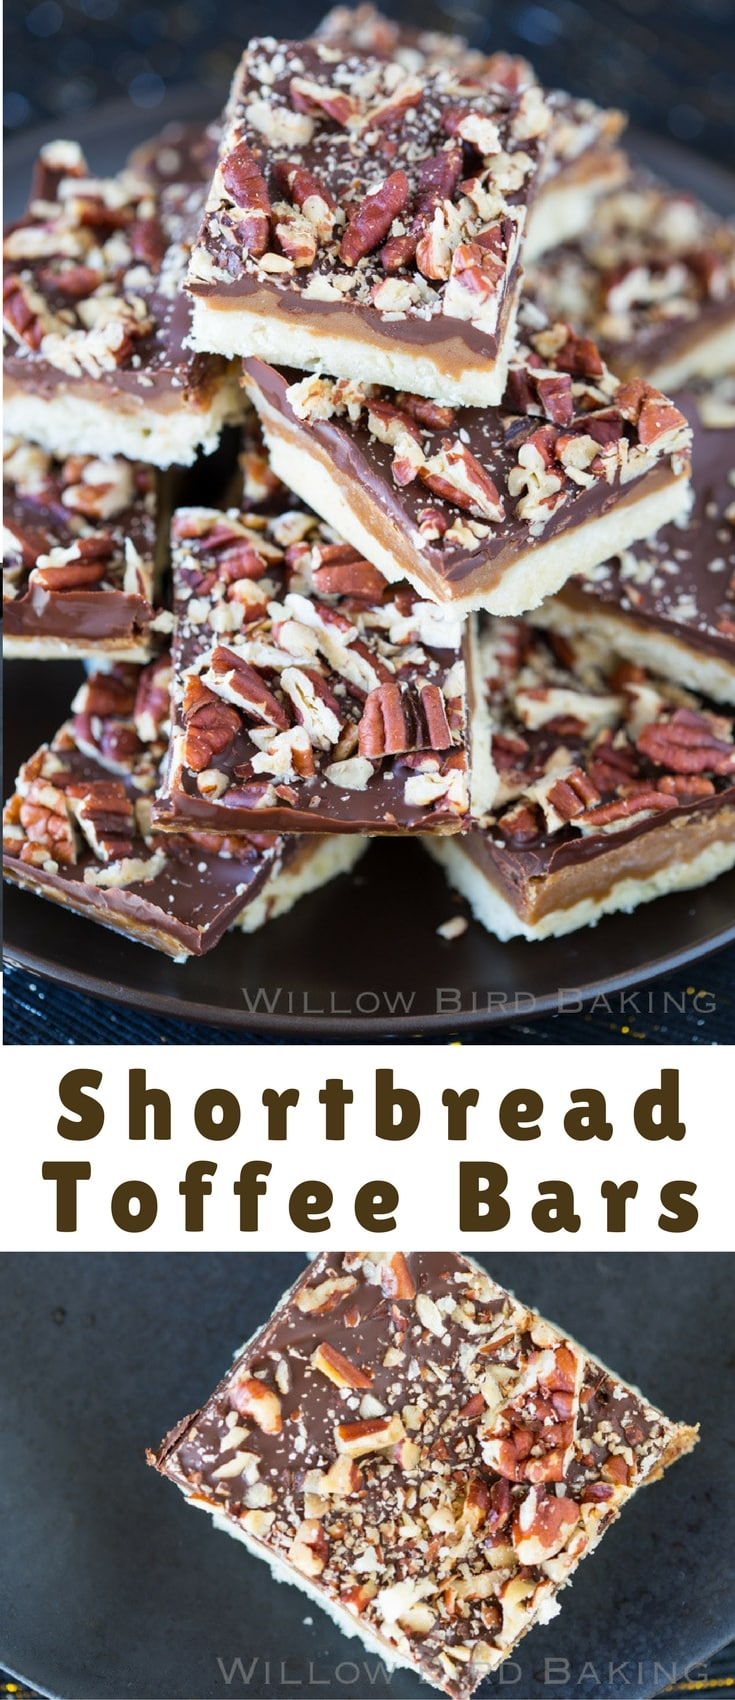 If you love easy saltine toffee, you'll love this adaptation! Buttery, caramelized toffee is sandwiched between a delicious shortbread base and dark chocolate. The bars are topped off with toasted pecans!